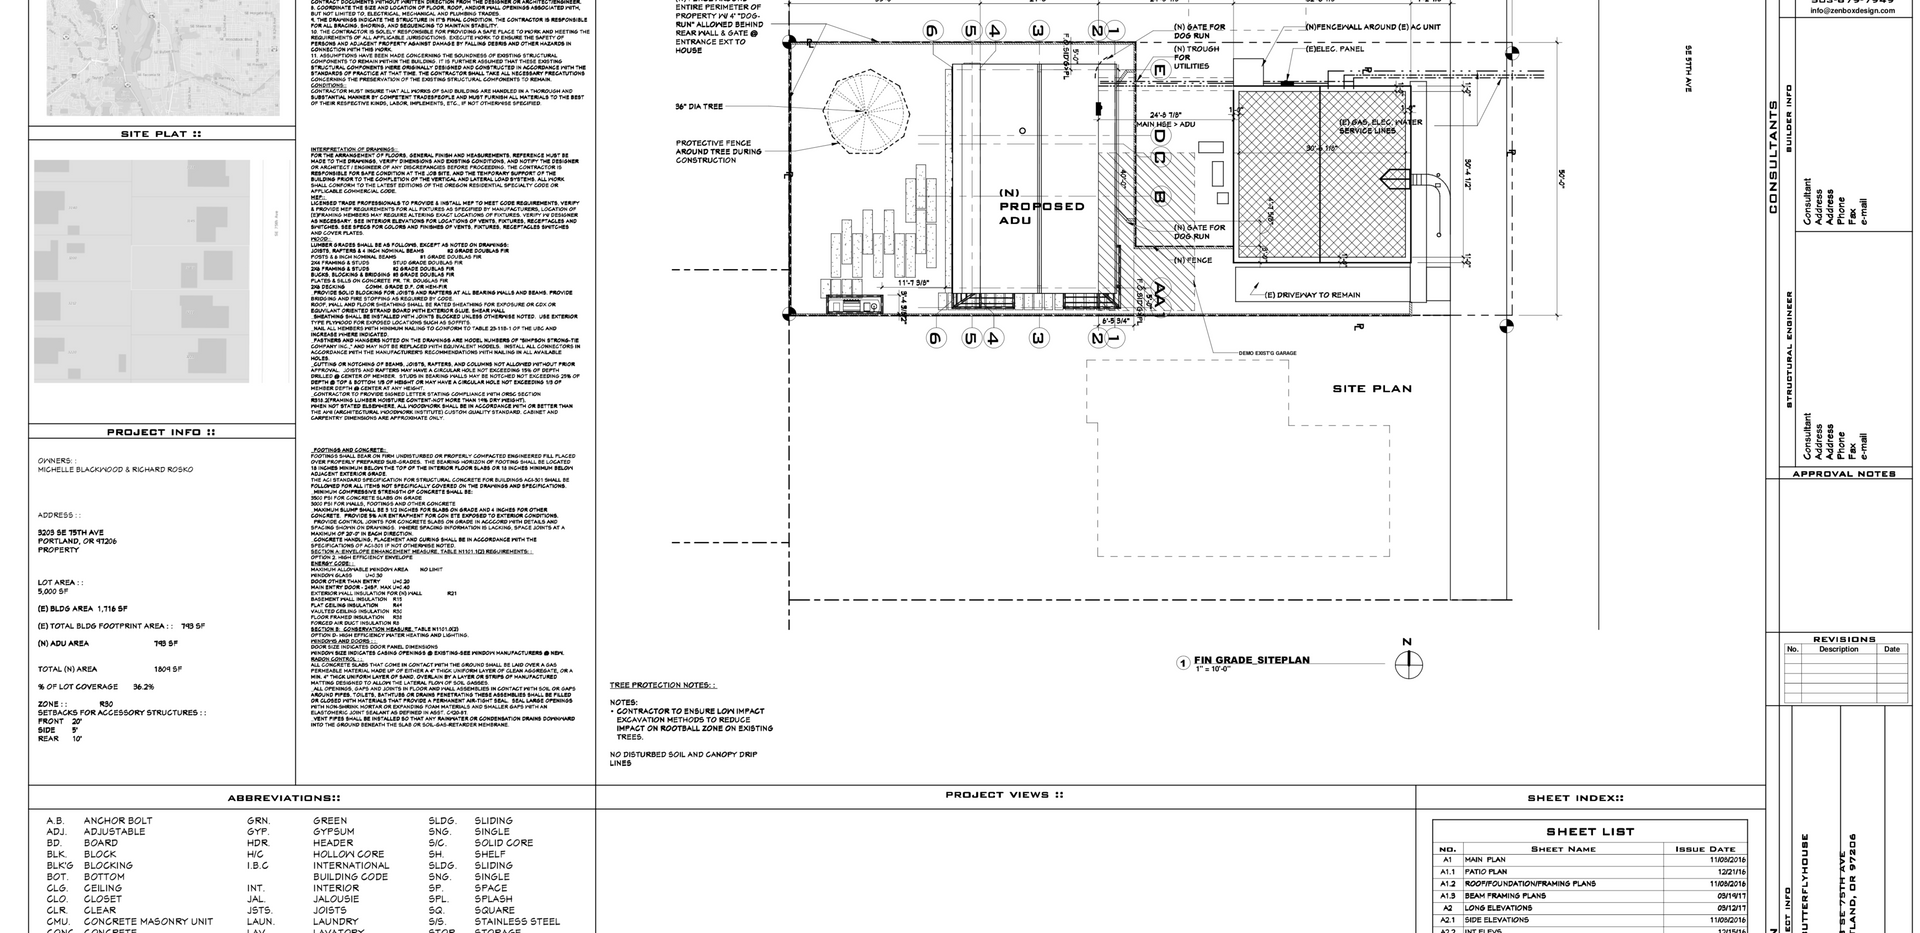 BH_SITEPLAN COVER PAGE .png